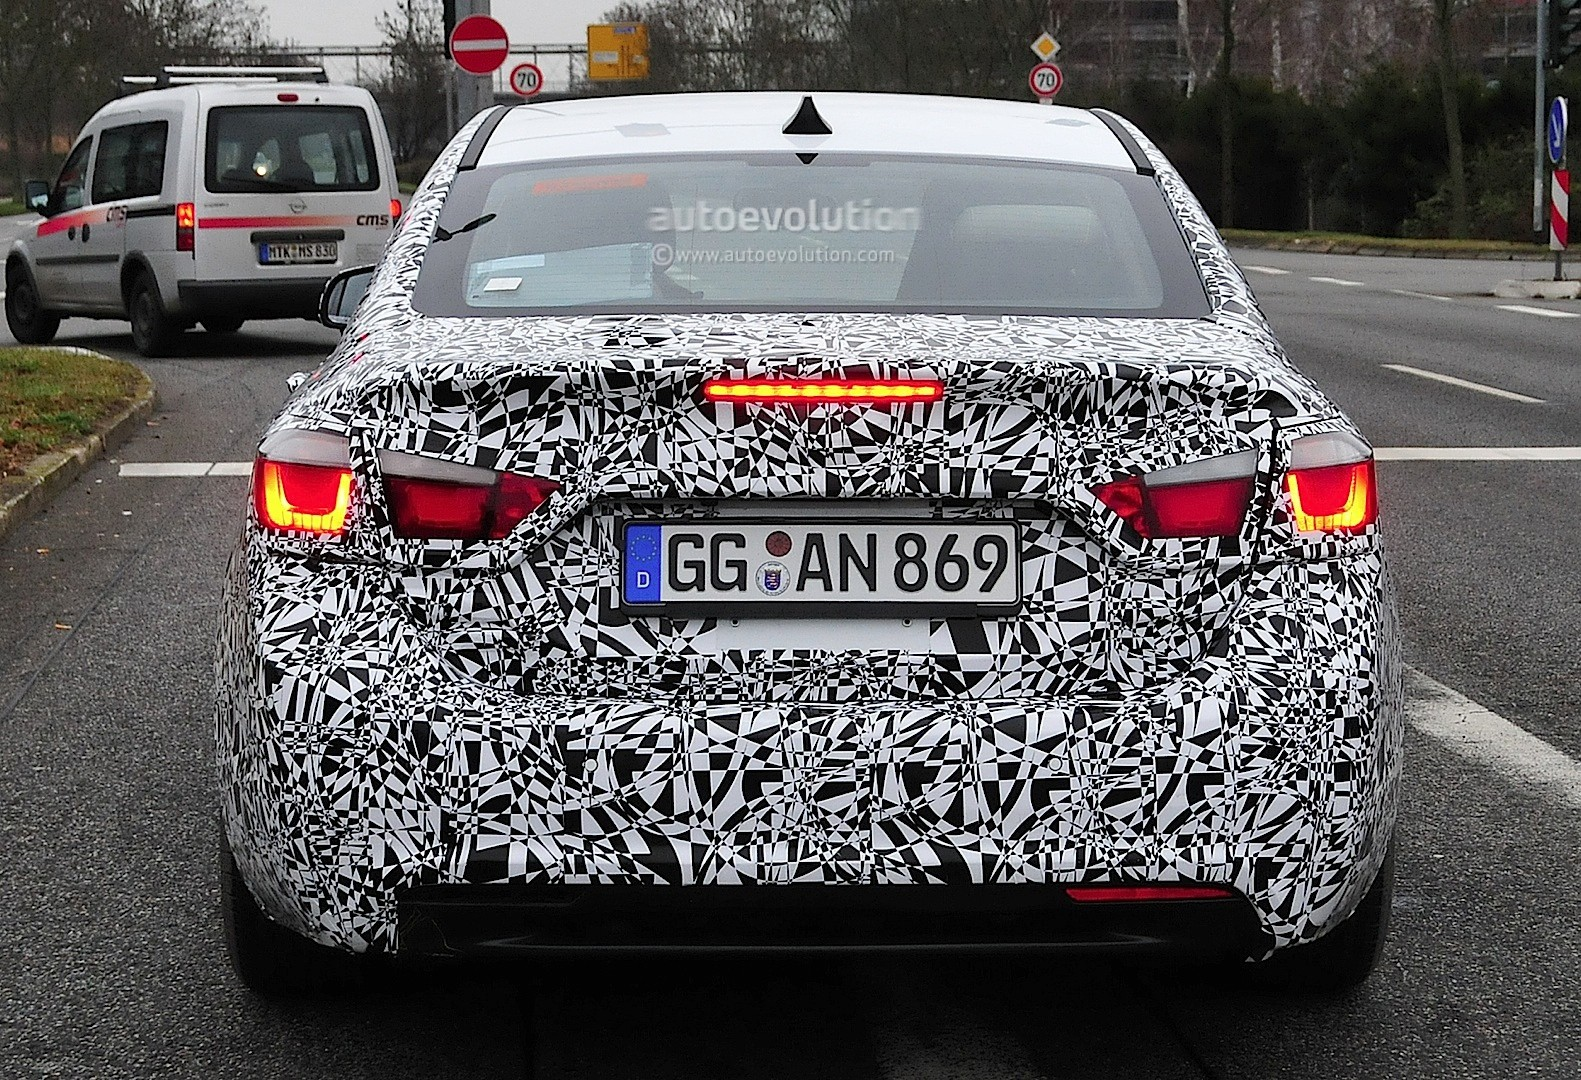 2016 Chevrolet Cruze Teased Boasting Android Auto and Apple